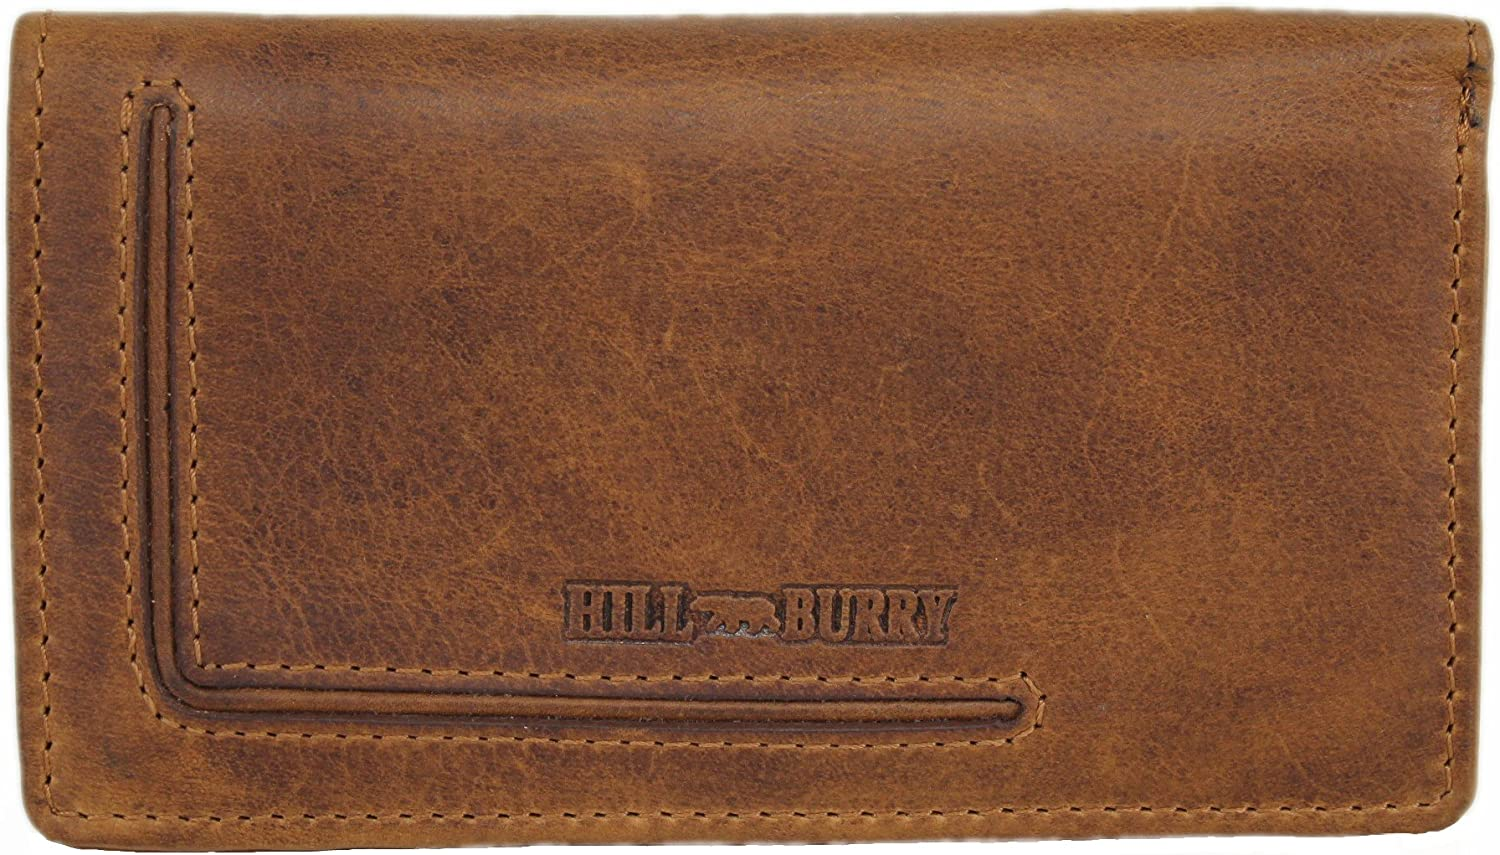 Hill Burry Women's Wallet Purse Natural Oiled Fullgrain Leather Vintage Style Dublin